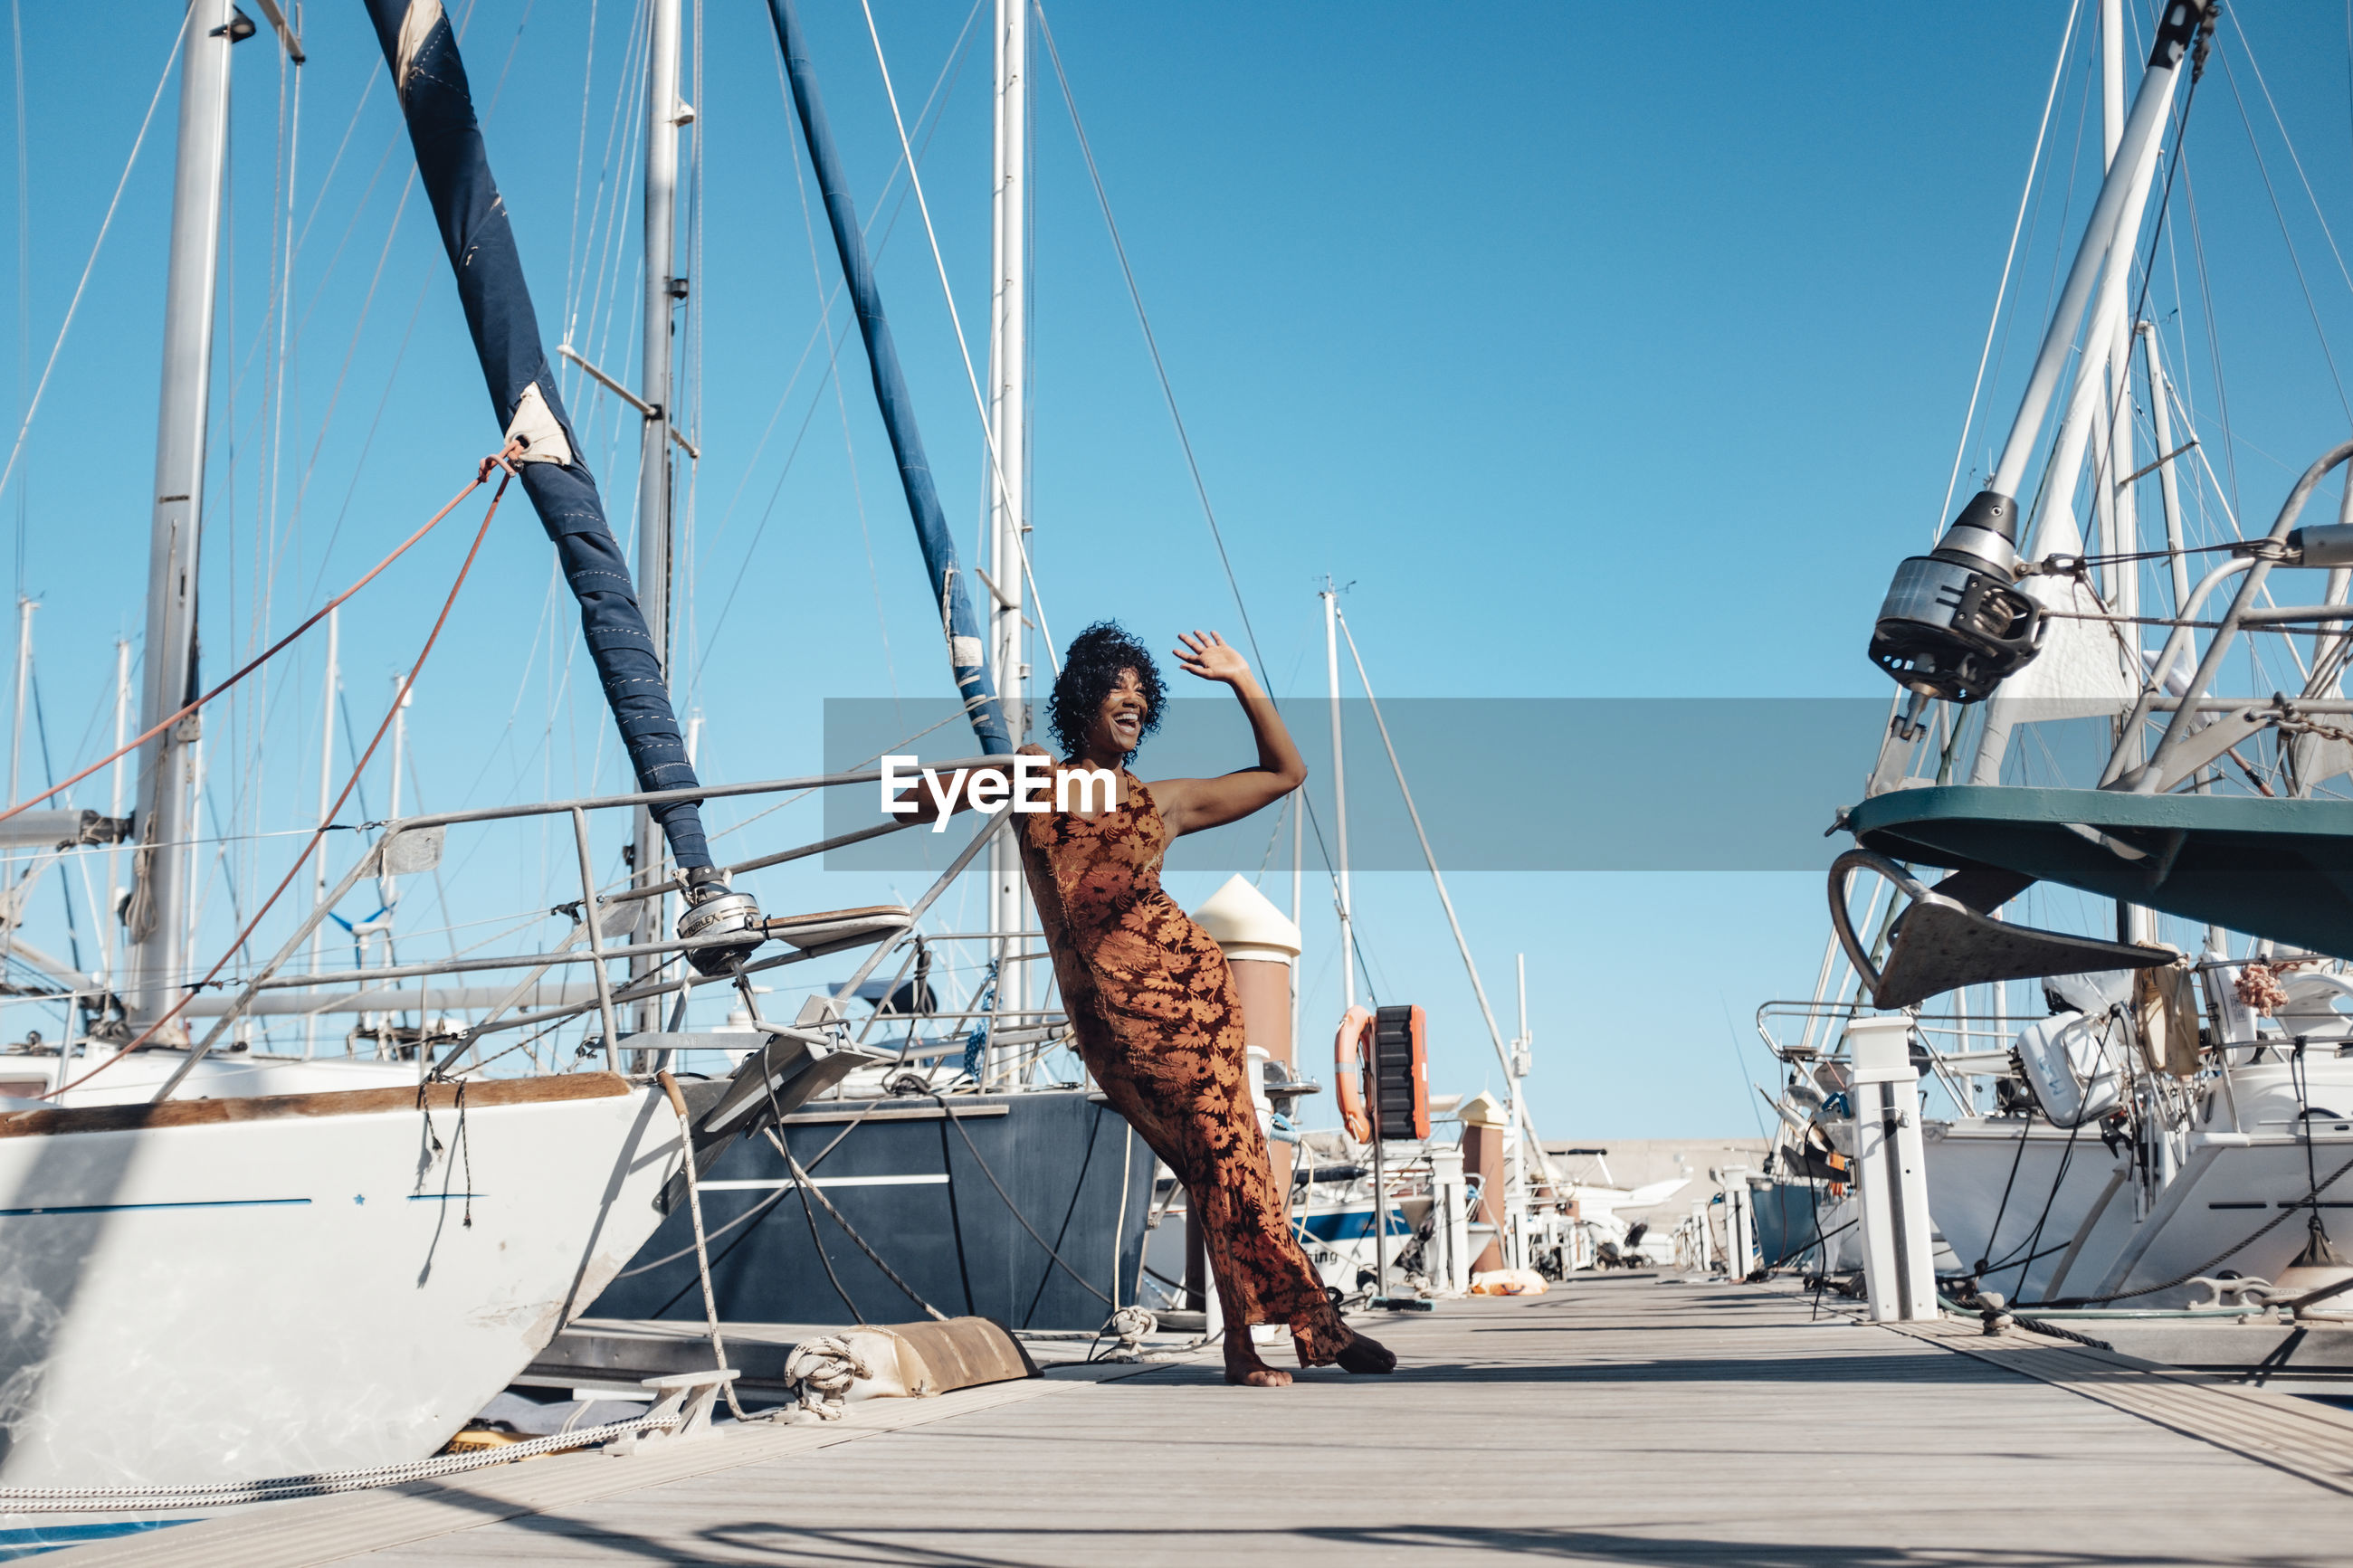 WOMAN ON SAILBOAT AGAINST SKY